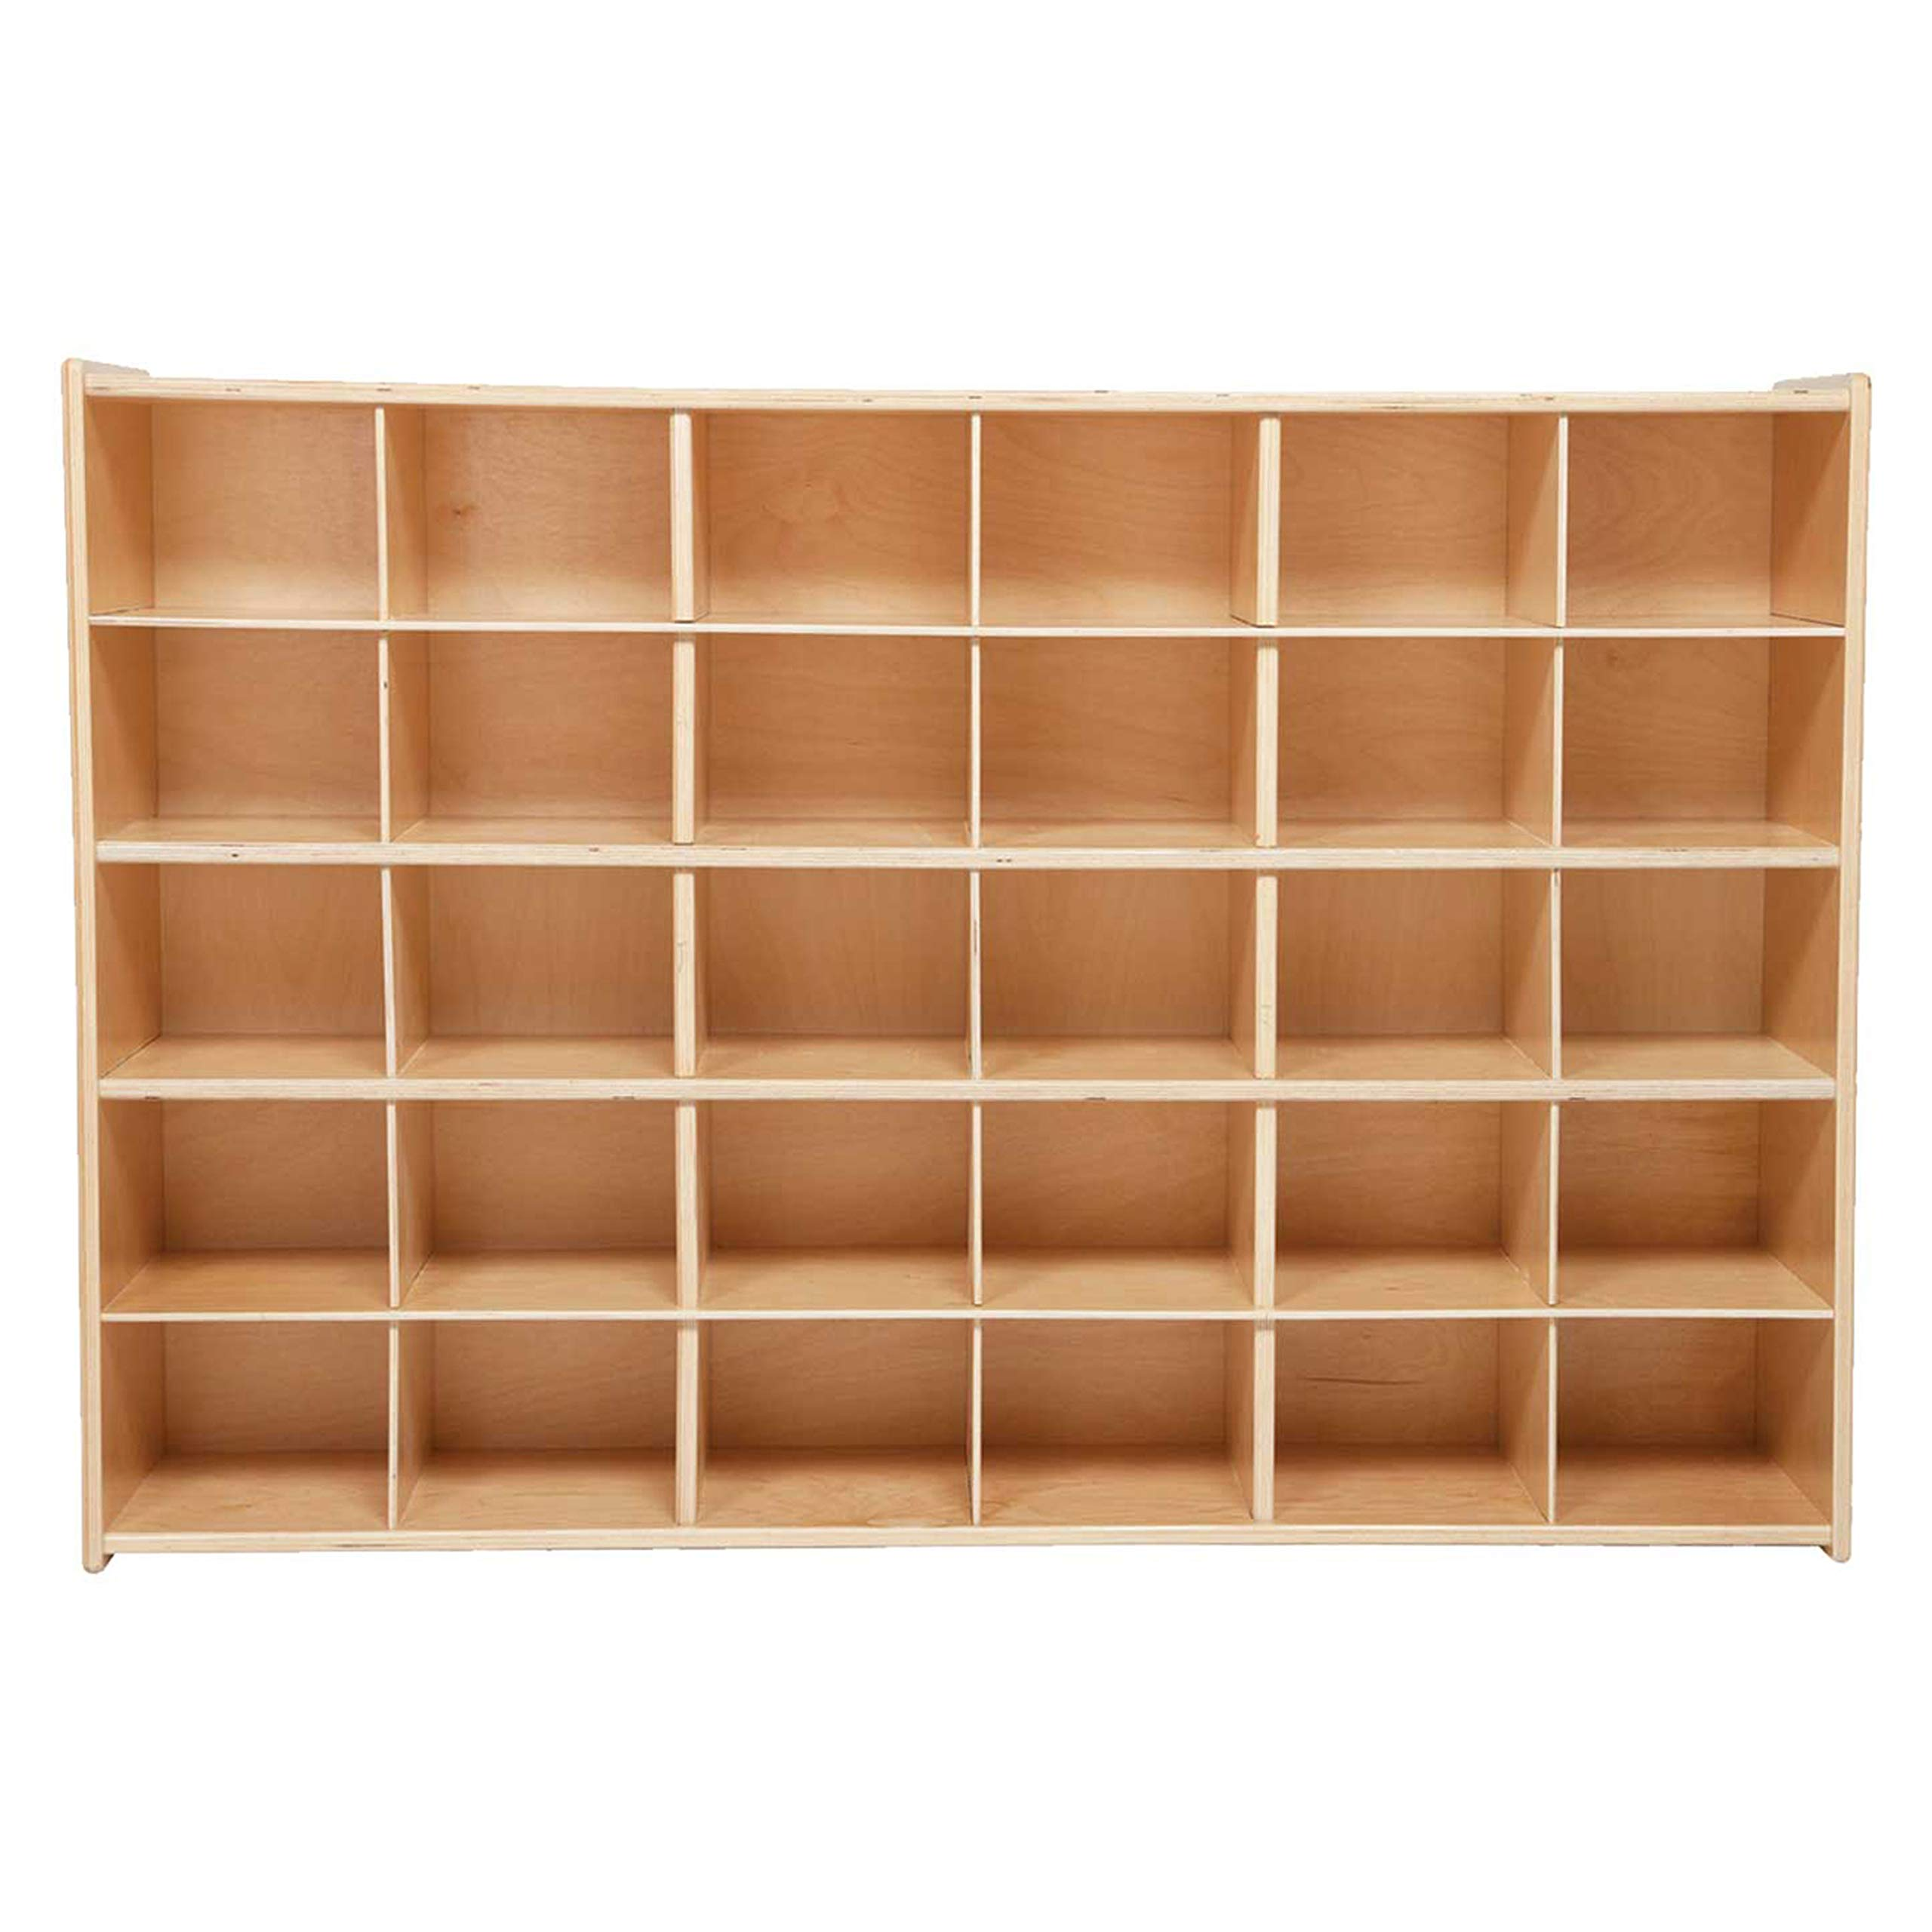 Contender 30 Cubby Wooden Storage Unit - RTA by Contender